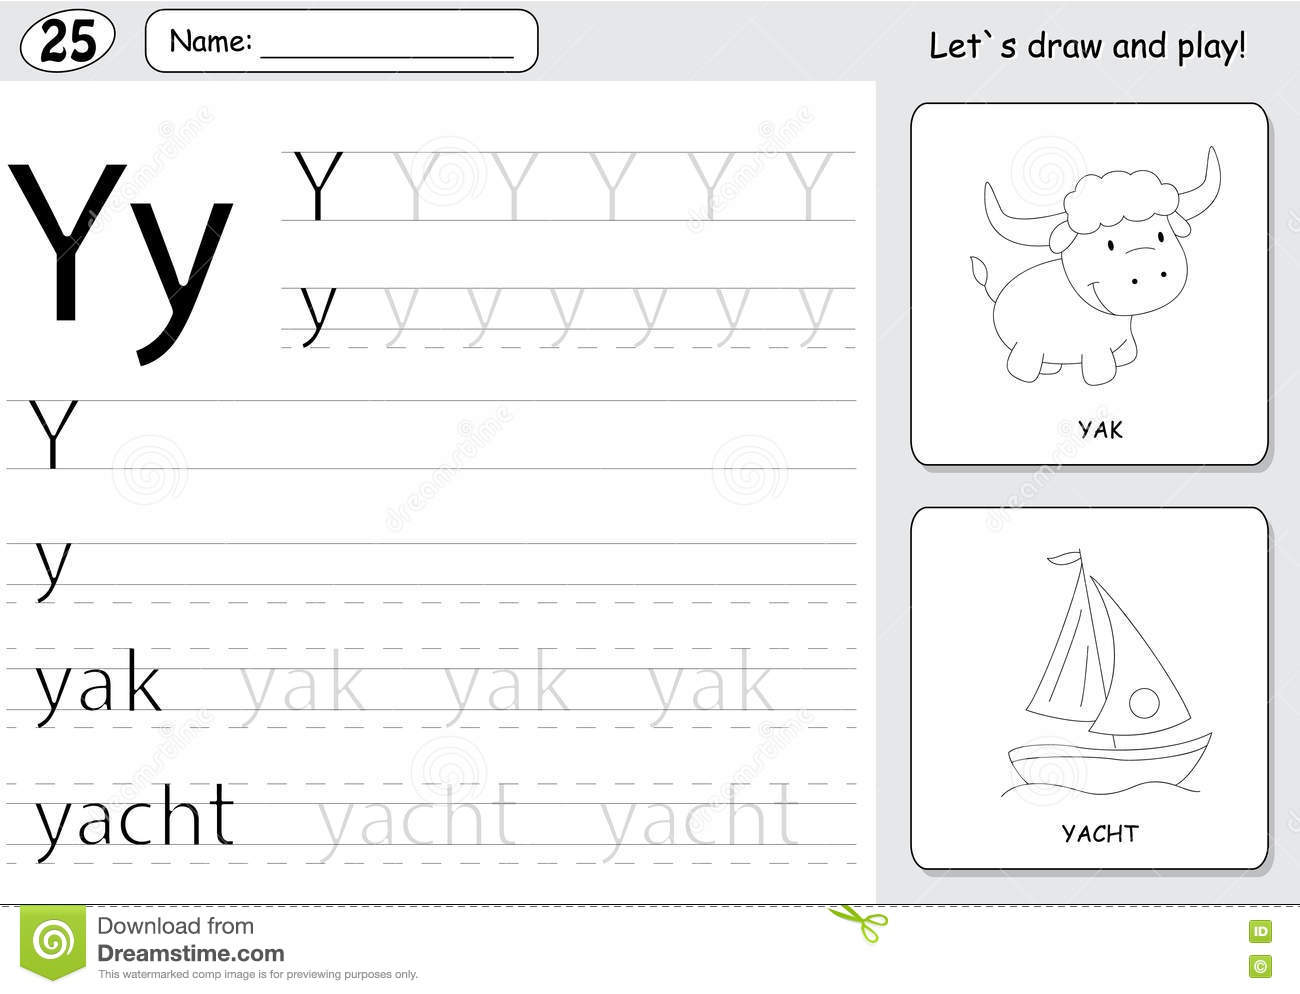 Cartoon Yak And Yacht Alphabet Tracing Worksheet Writing AZ A – Alphabet Tracing Worksheets A-z